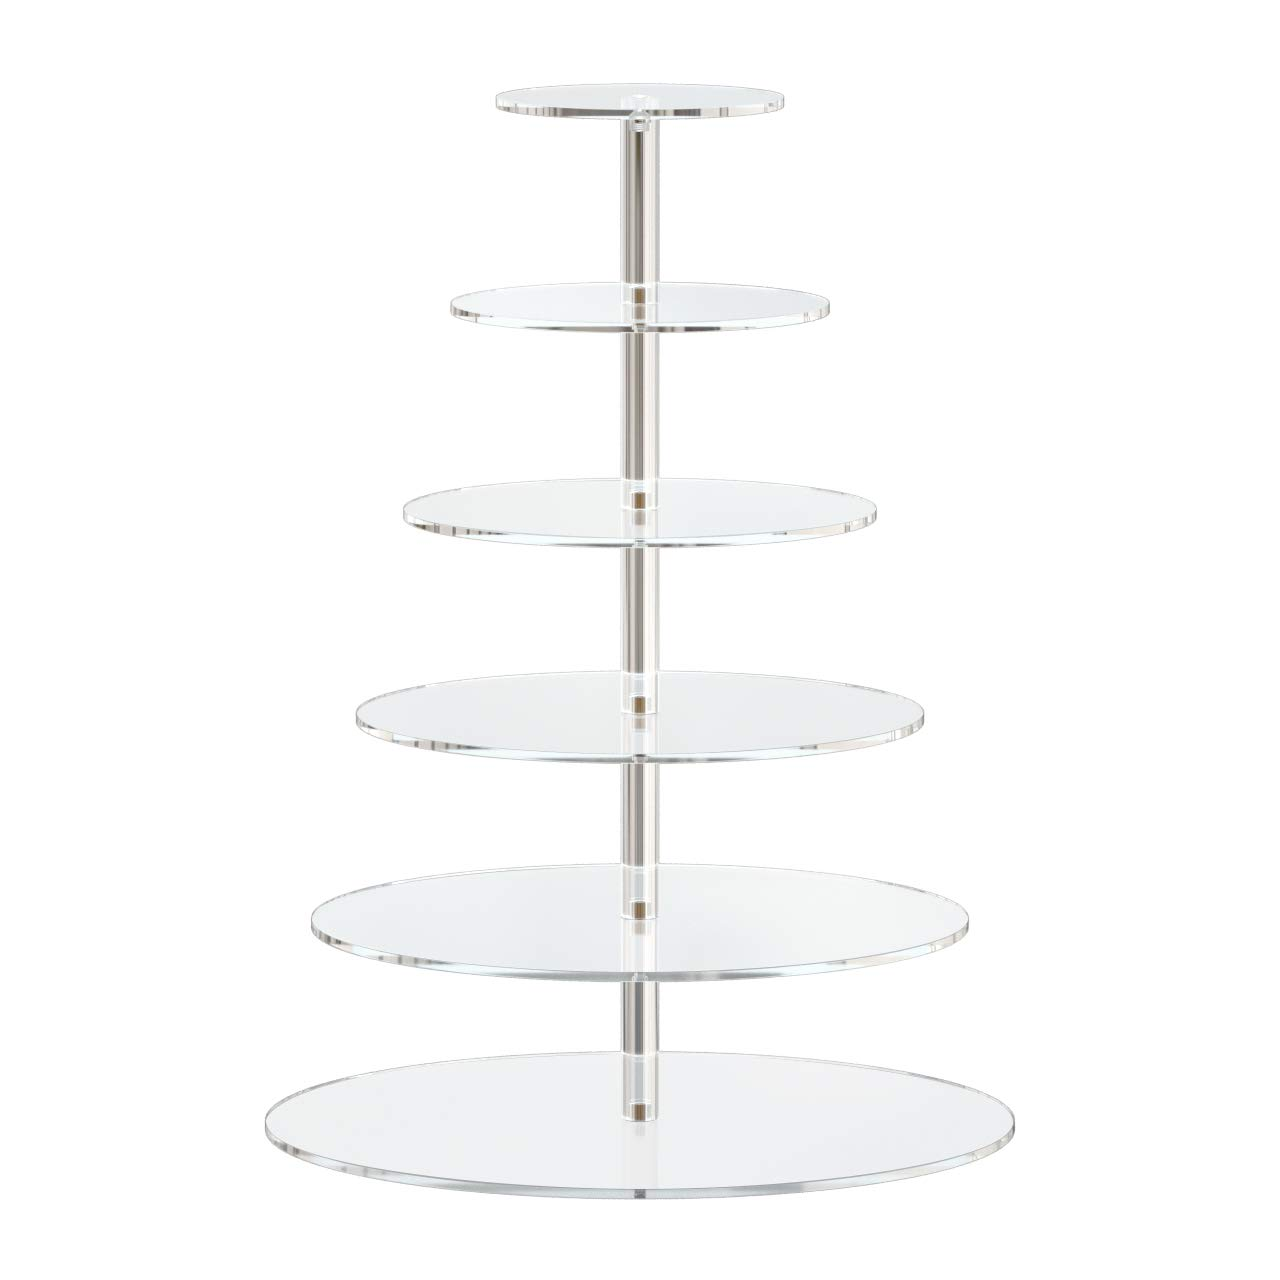 6 Tiered Acrylic Round Cupcake Stand Cupcake Towers and Tier Stand Clear Cake Holder Pastry Serving Platter for Wedding Holidays Buffets Birthday Party by HIIMIEI